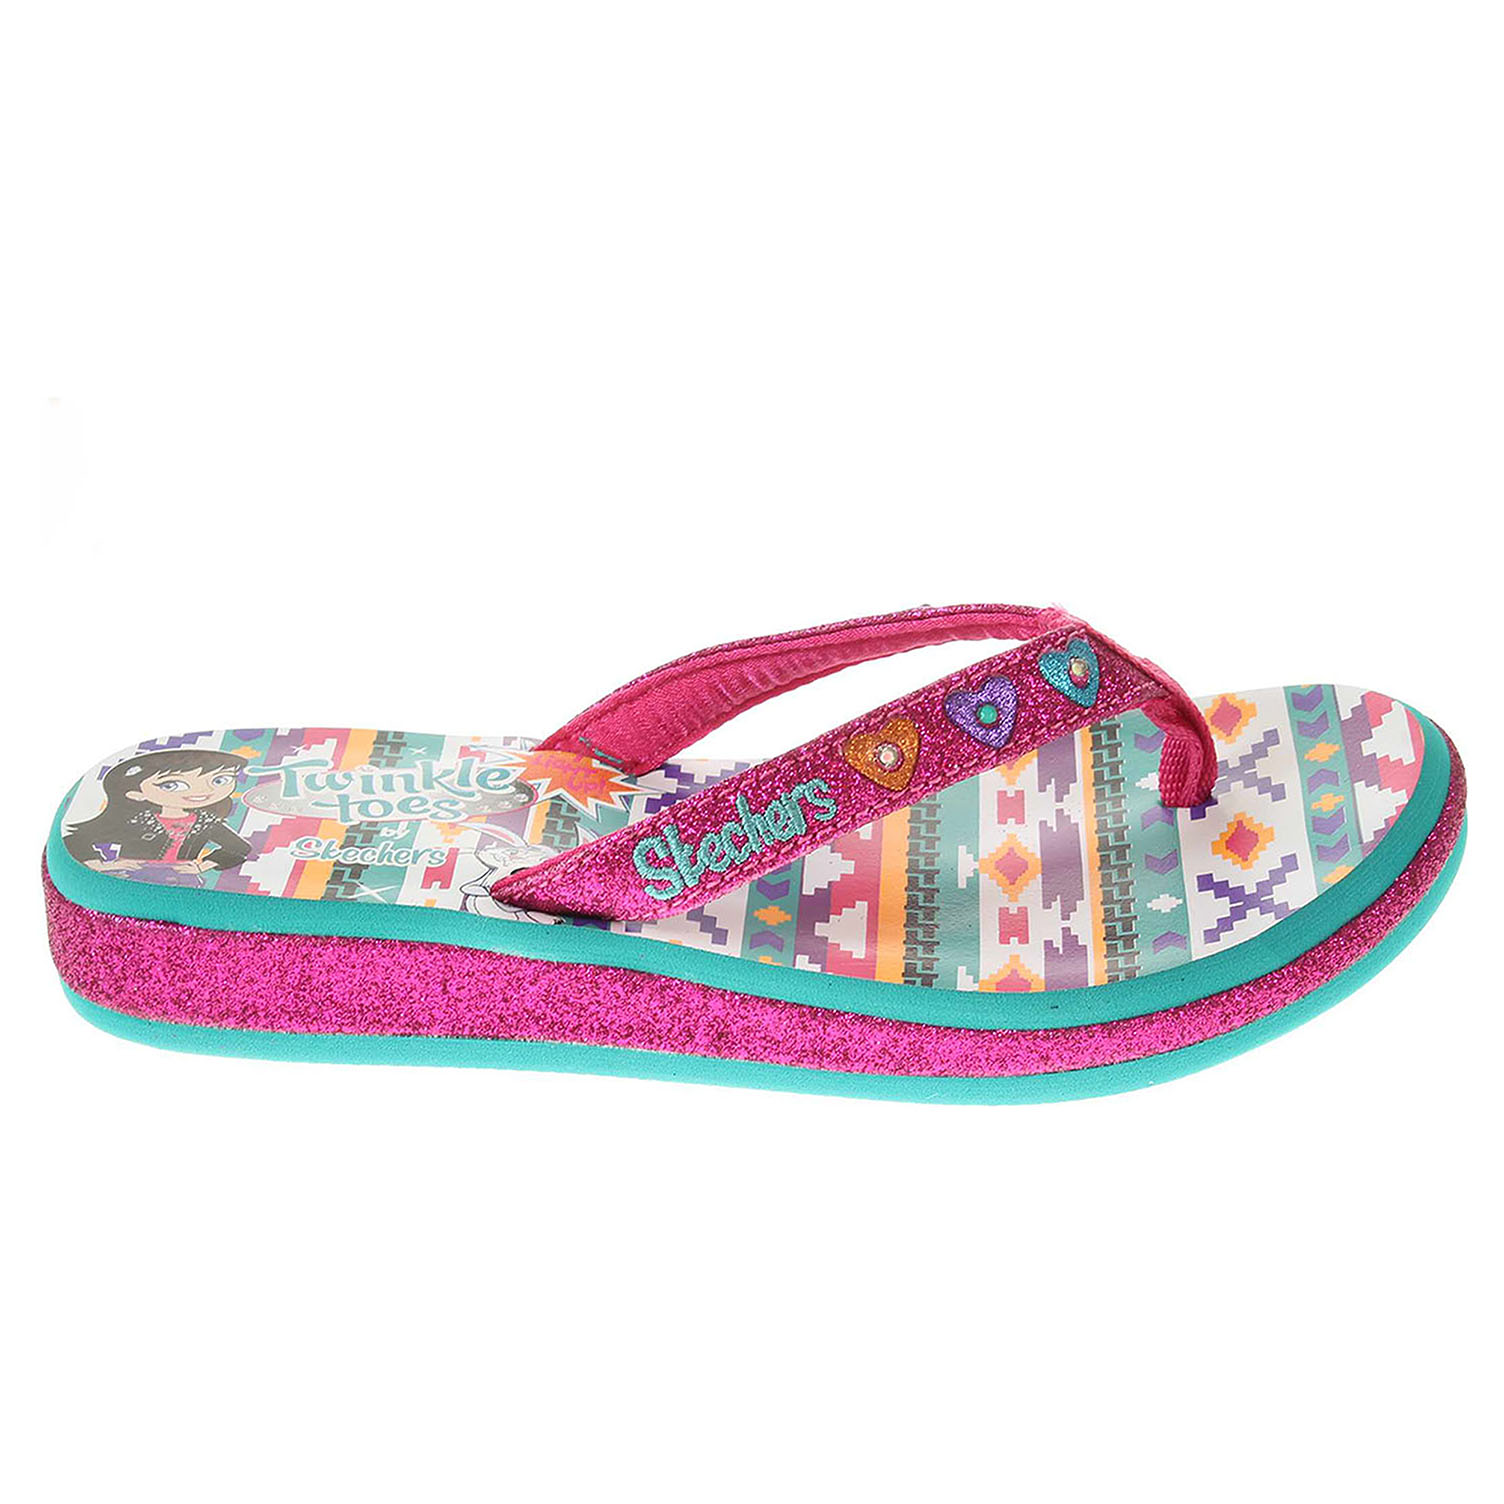 Skechers Summerglow h.pink-aqua 30